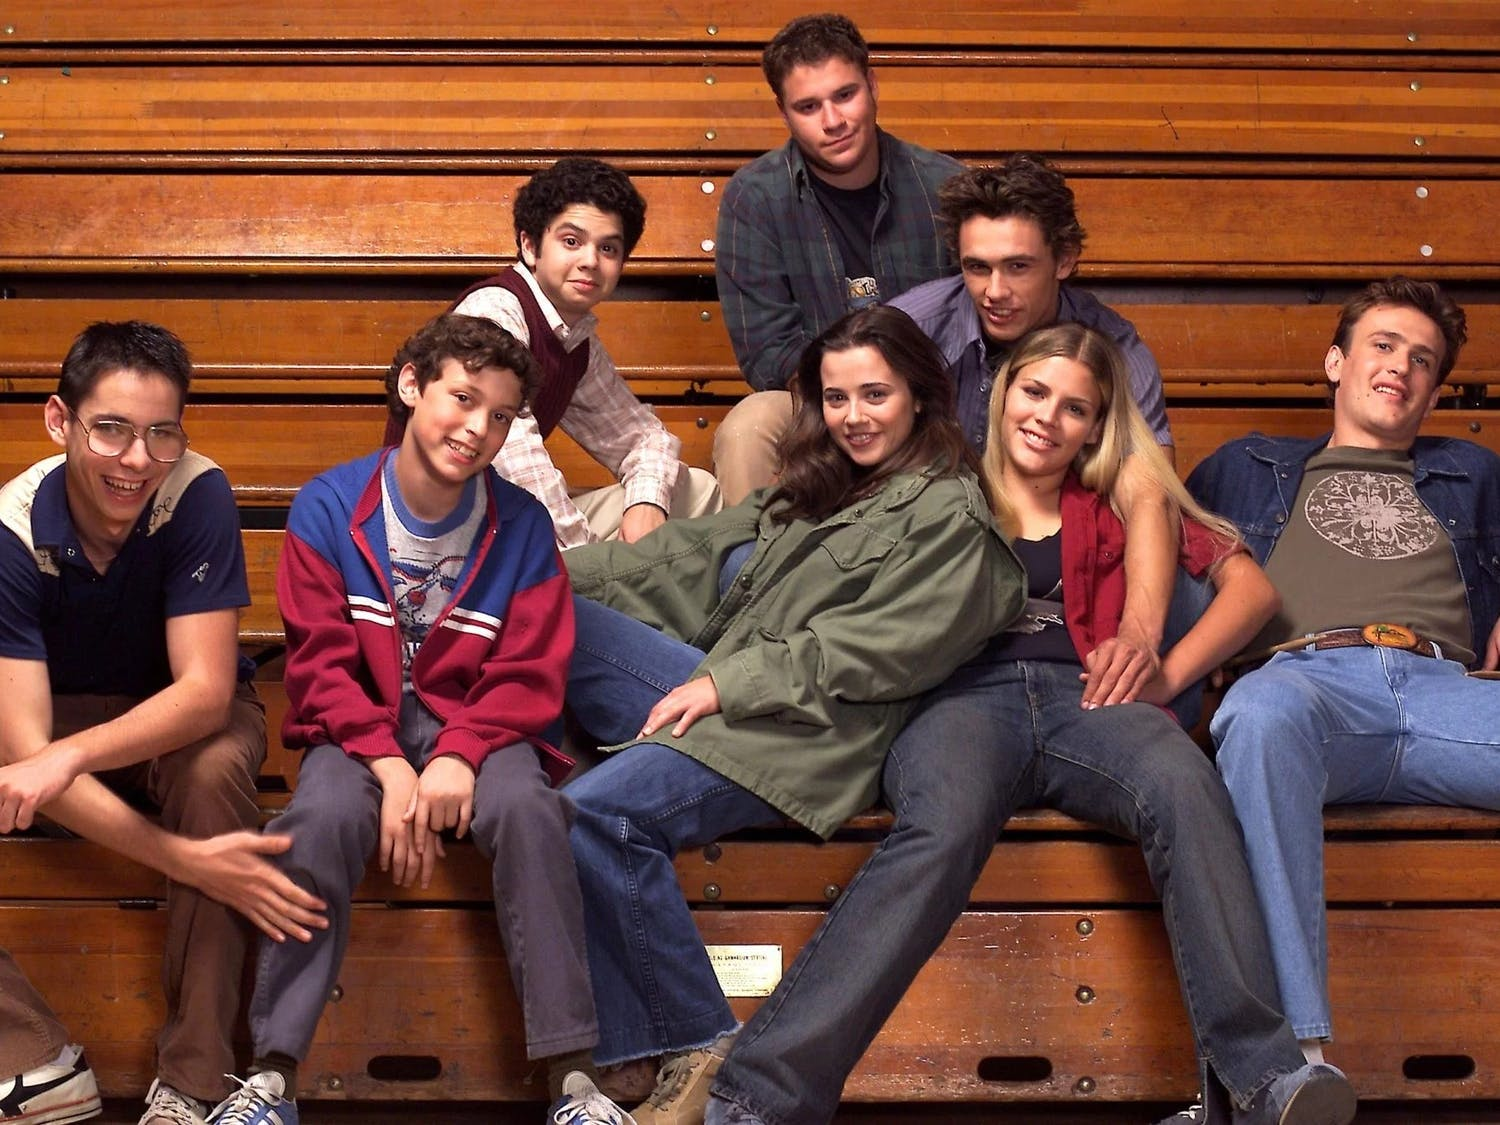 """""""Freaks and Geeks"""" is late 1990s television at its finest, as it follows Lindsay, a high schooler who is trying to escape her """"goody-two-shoes"""" reputation by hanging out with the troubled """"freaks"""" at school."""